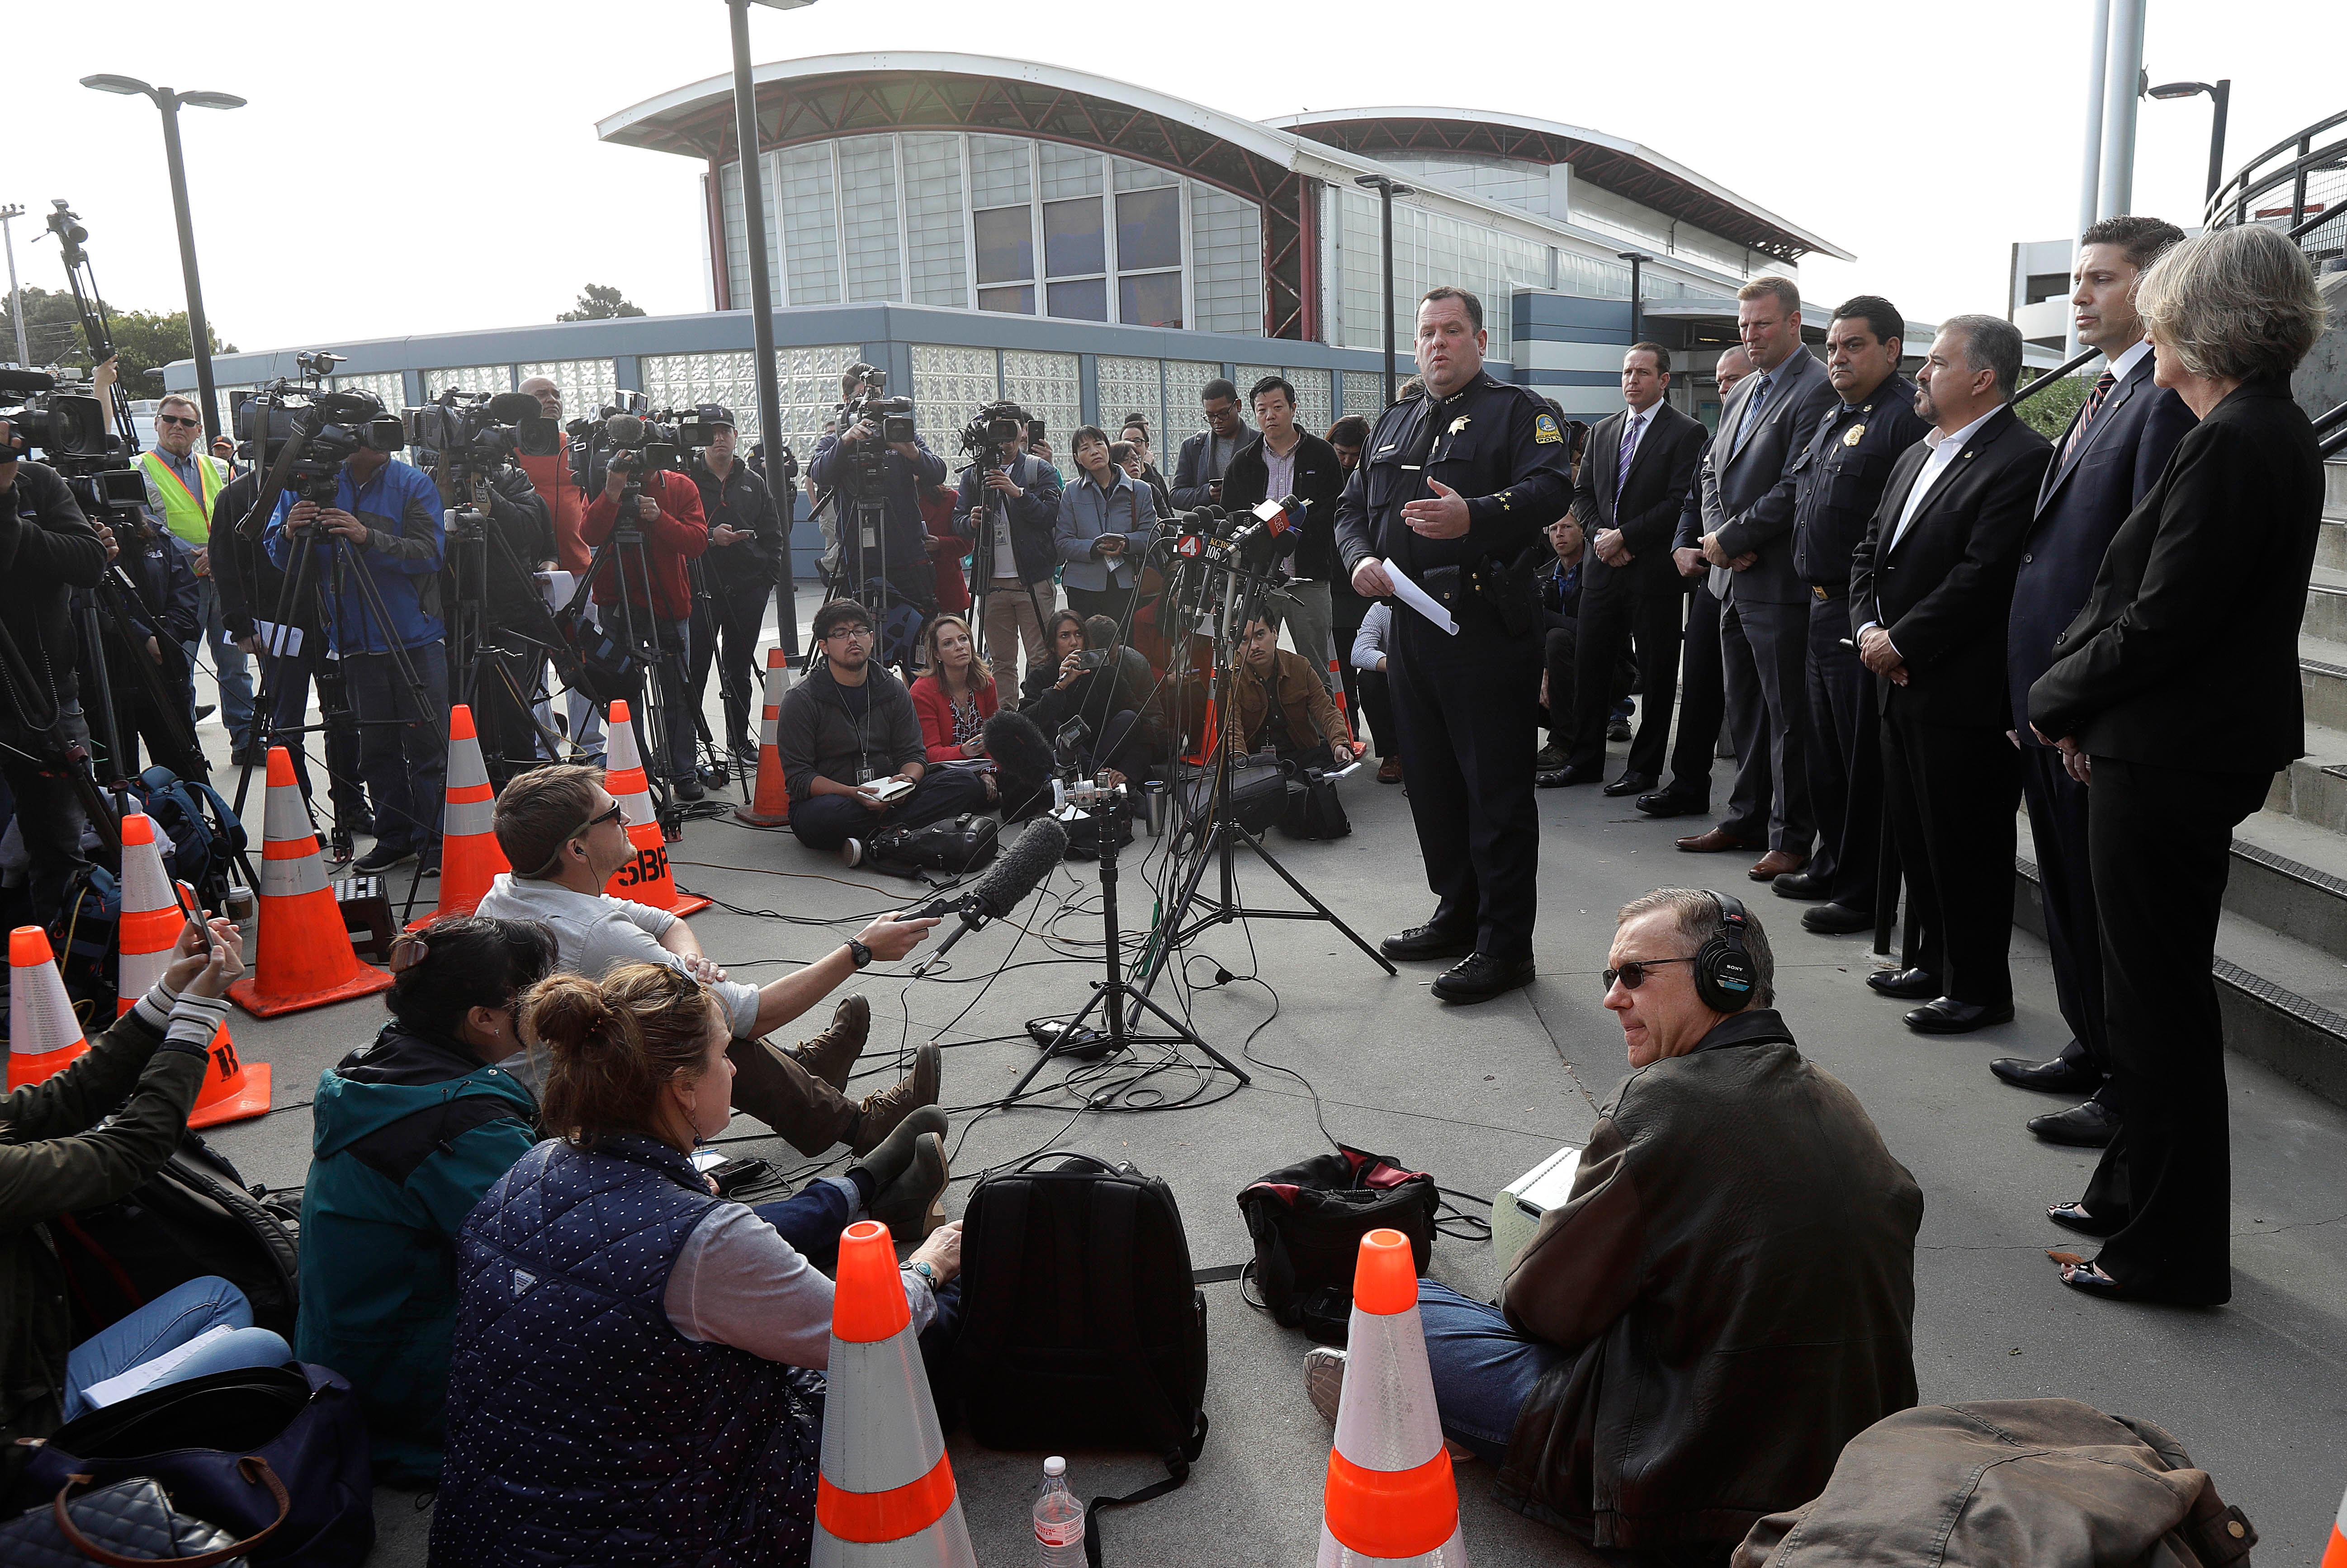 San Bruno Police Chief Ed Barberini, center right, speaks at a news conference in San Bruno, Calif., Wednesday, April 4, 2018. A woman suspected of shooting three people at YouTube headquarters before killing herself was furious with the company because it had stopped paying her for videos she posted on the platform, her father said Tuesday, April 3, 2018. (AP Photo/Jeff Chiu)